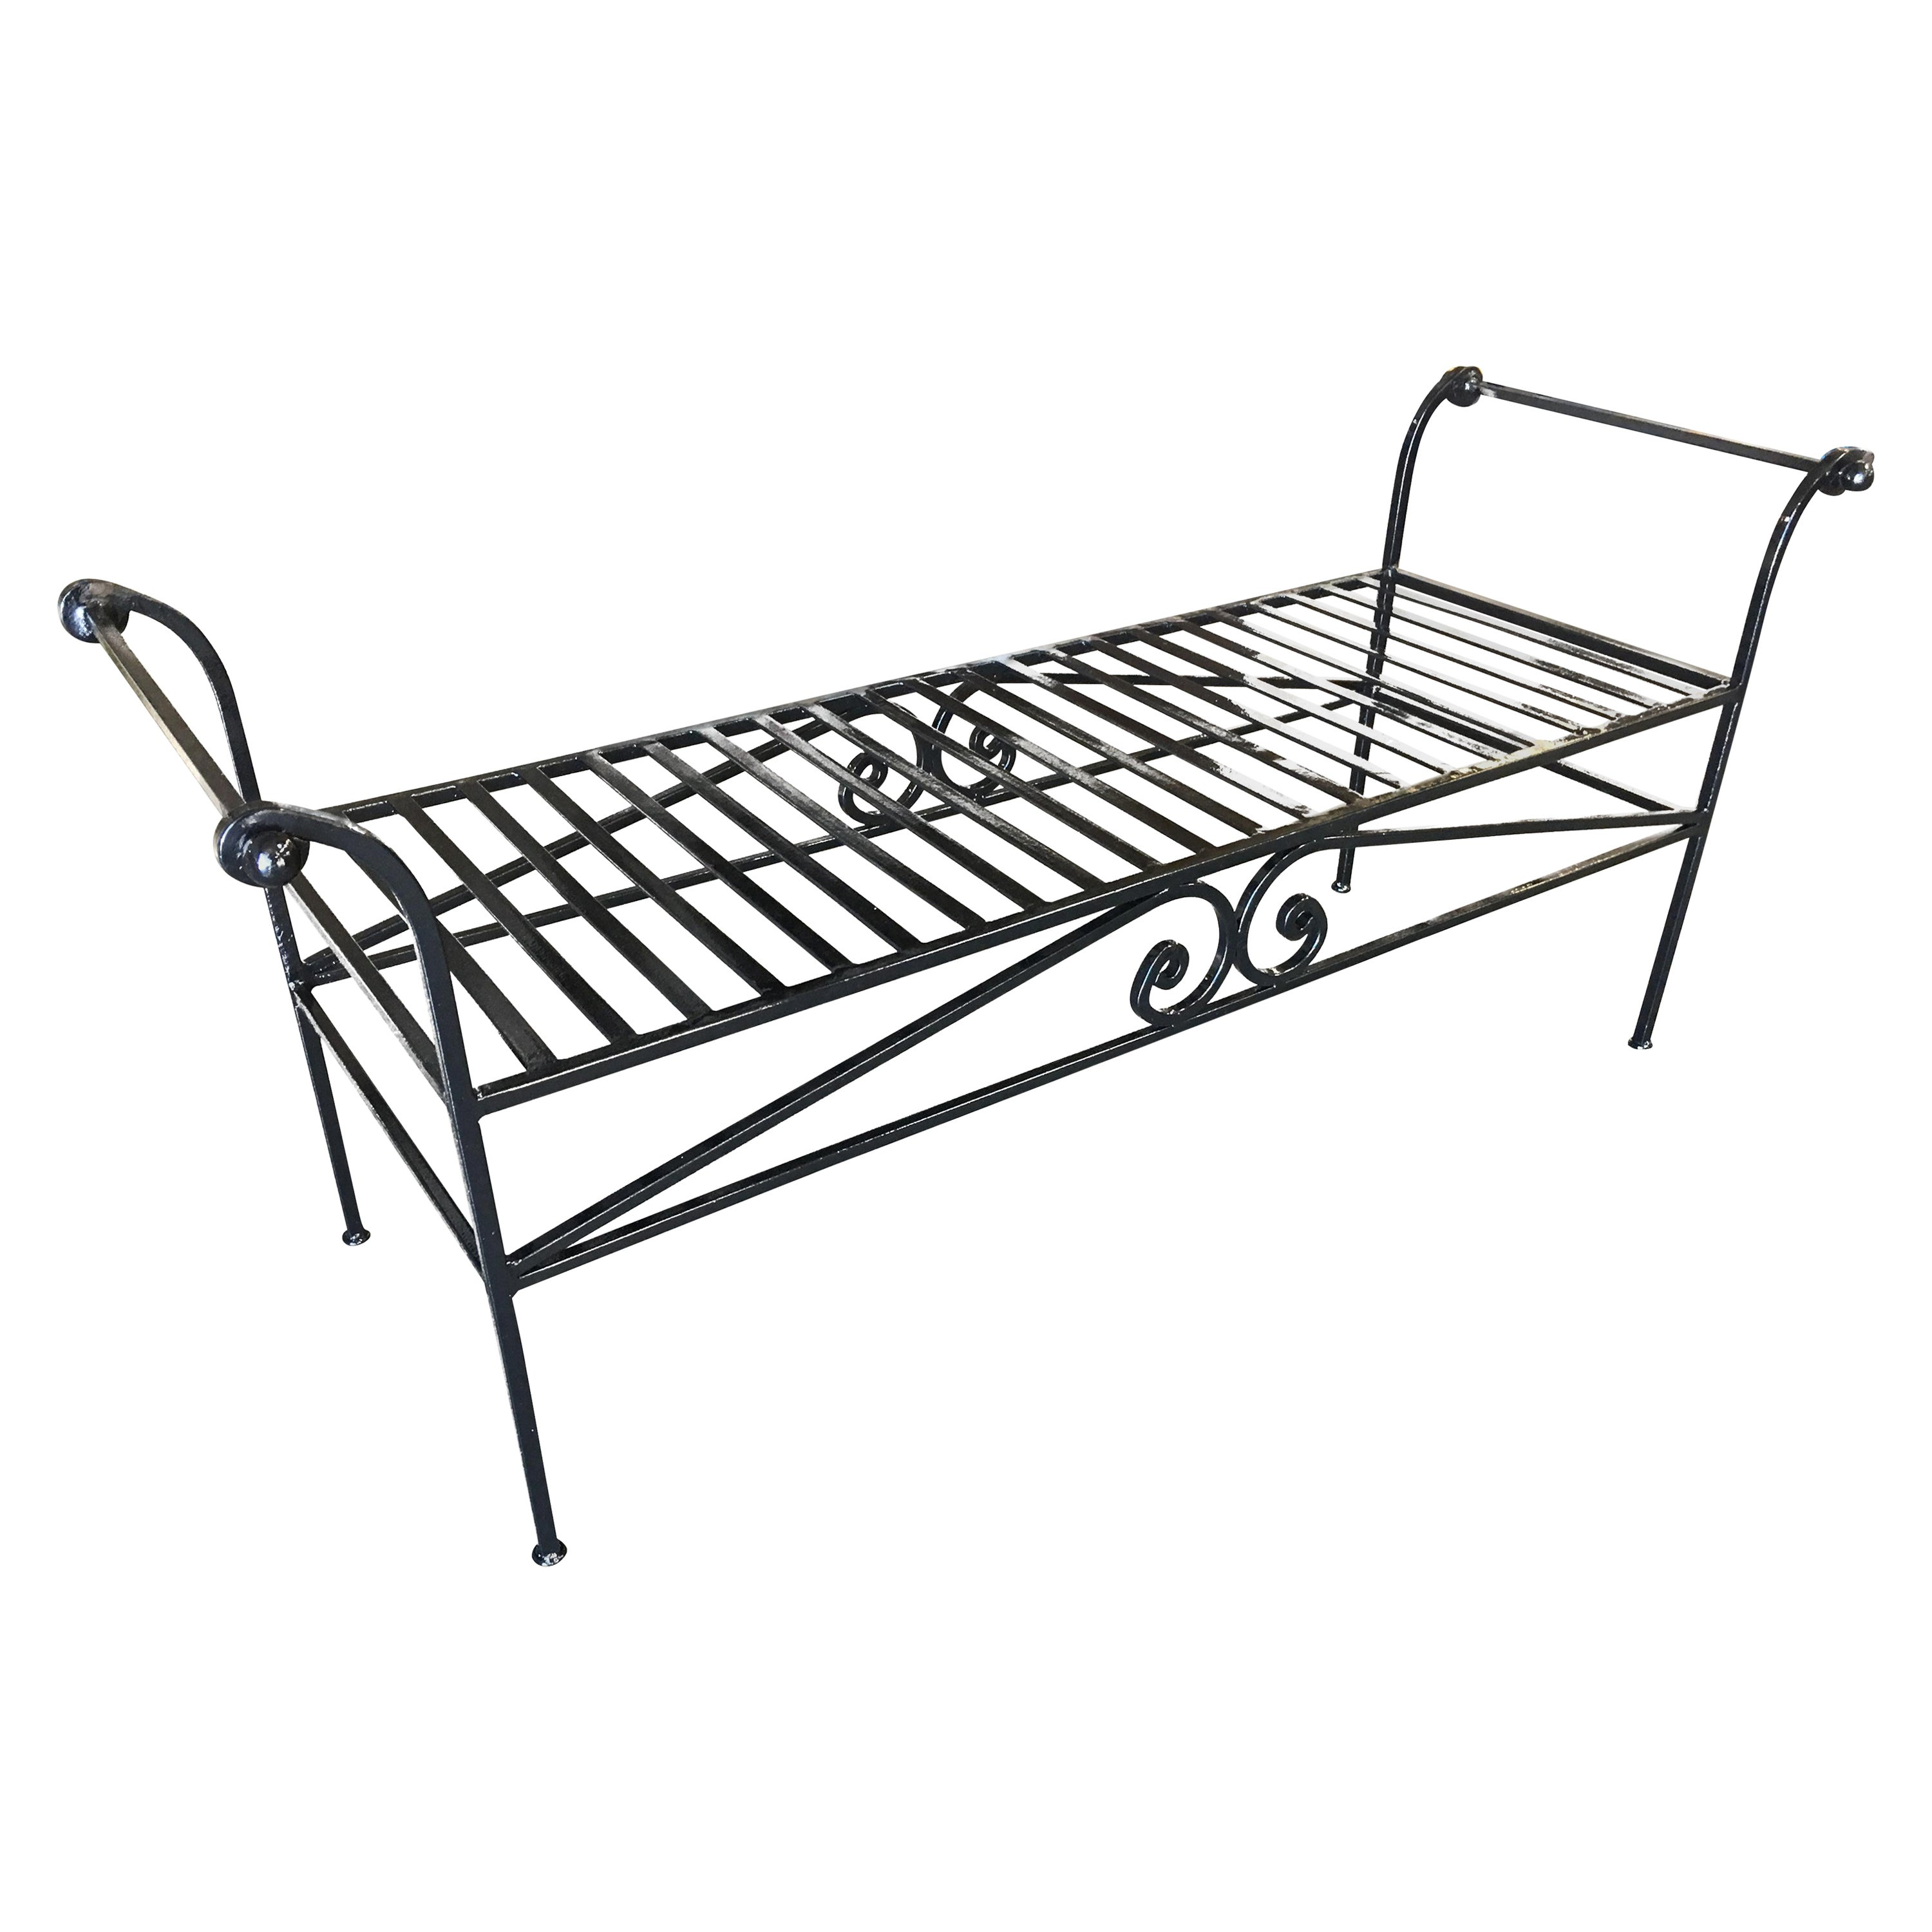 Scrolling Black Wrought Iron Chaise Lounge, Bench